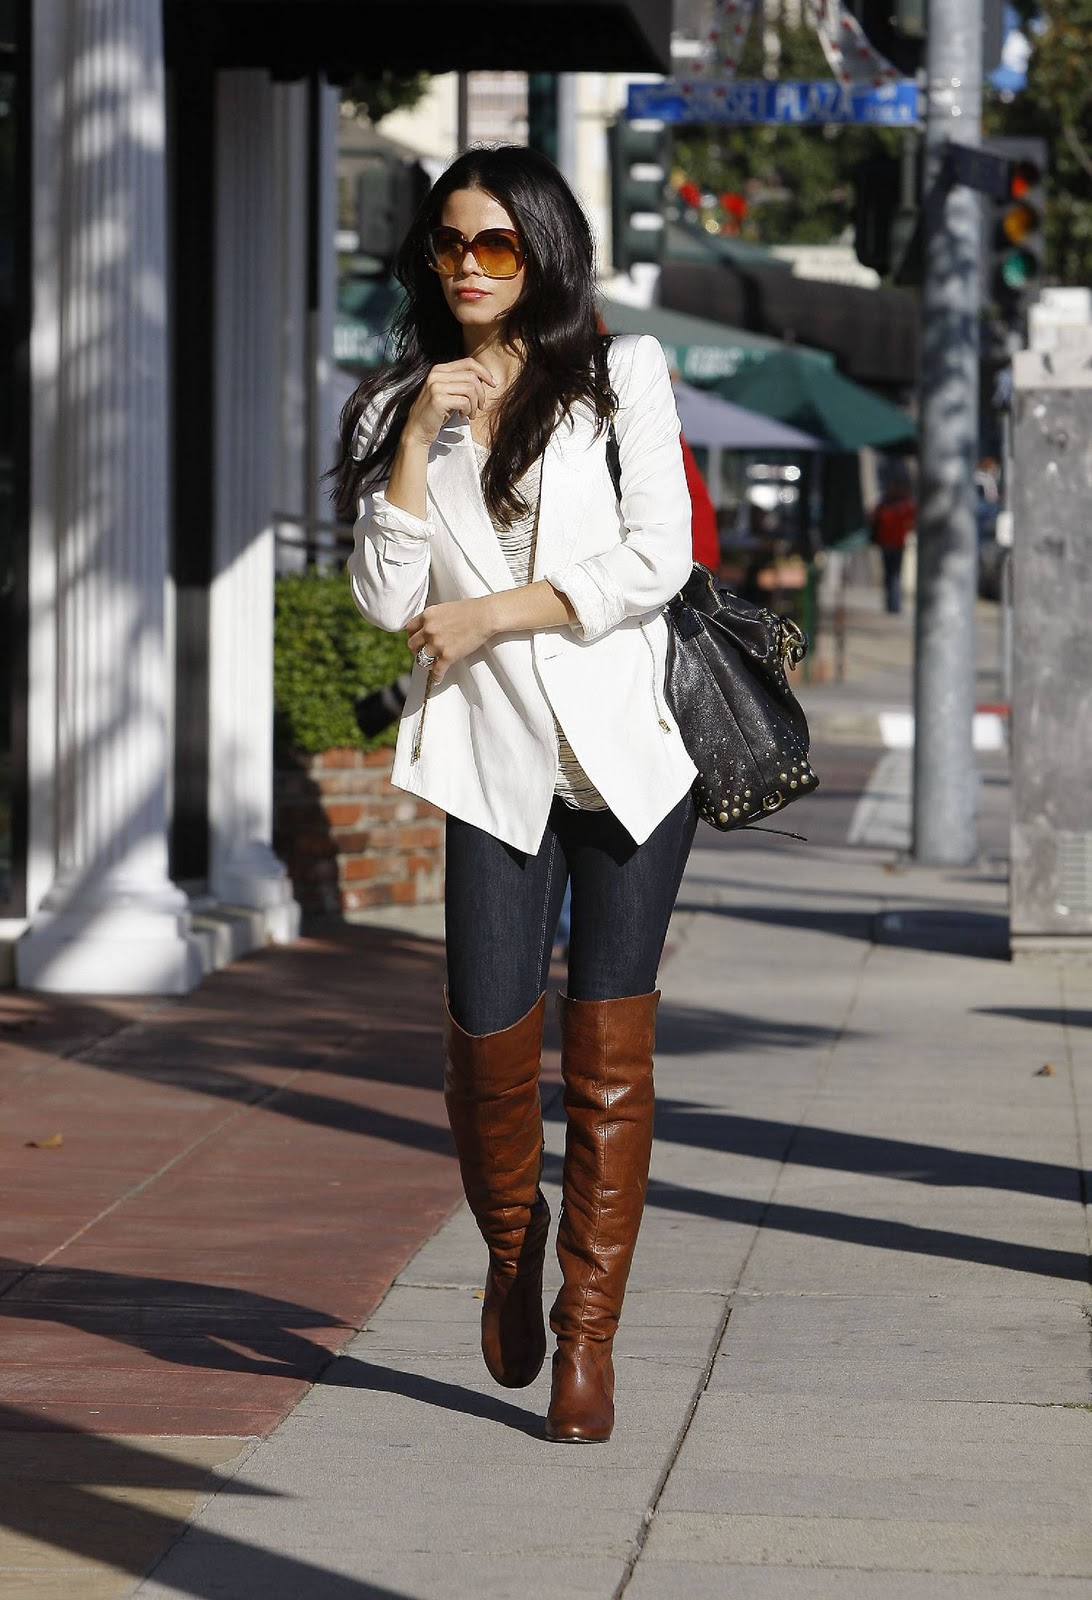 Jeans And Boots More Celebrities In Boots